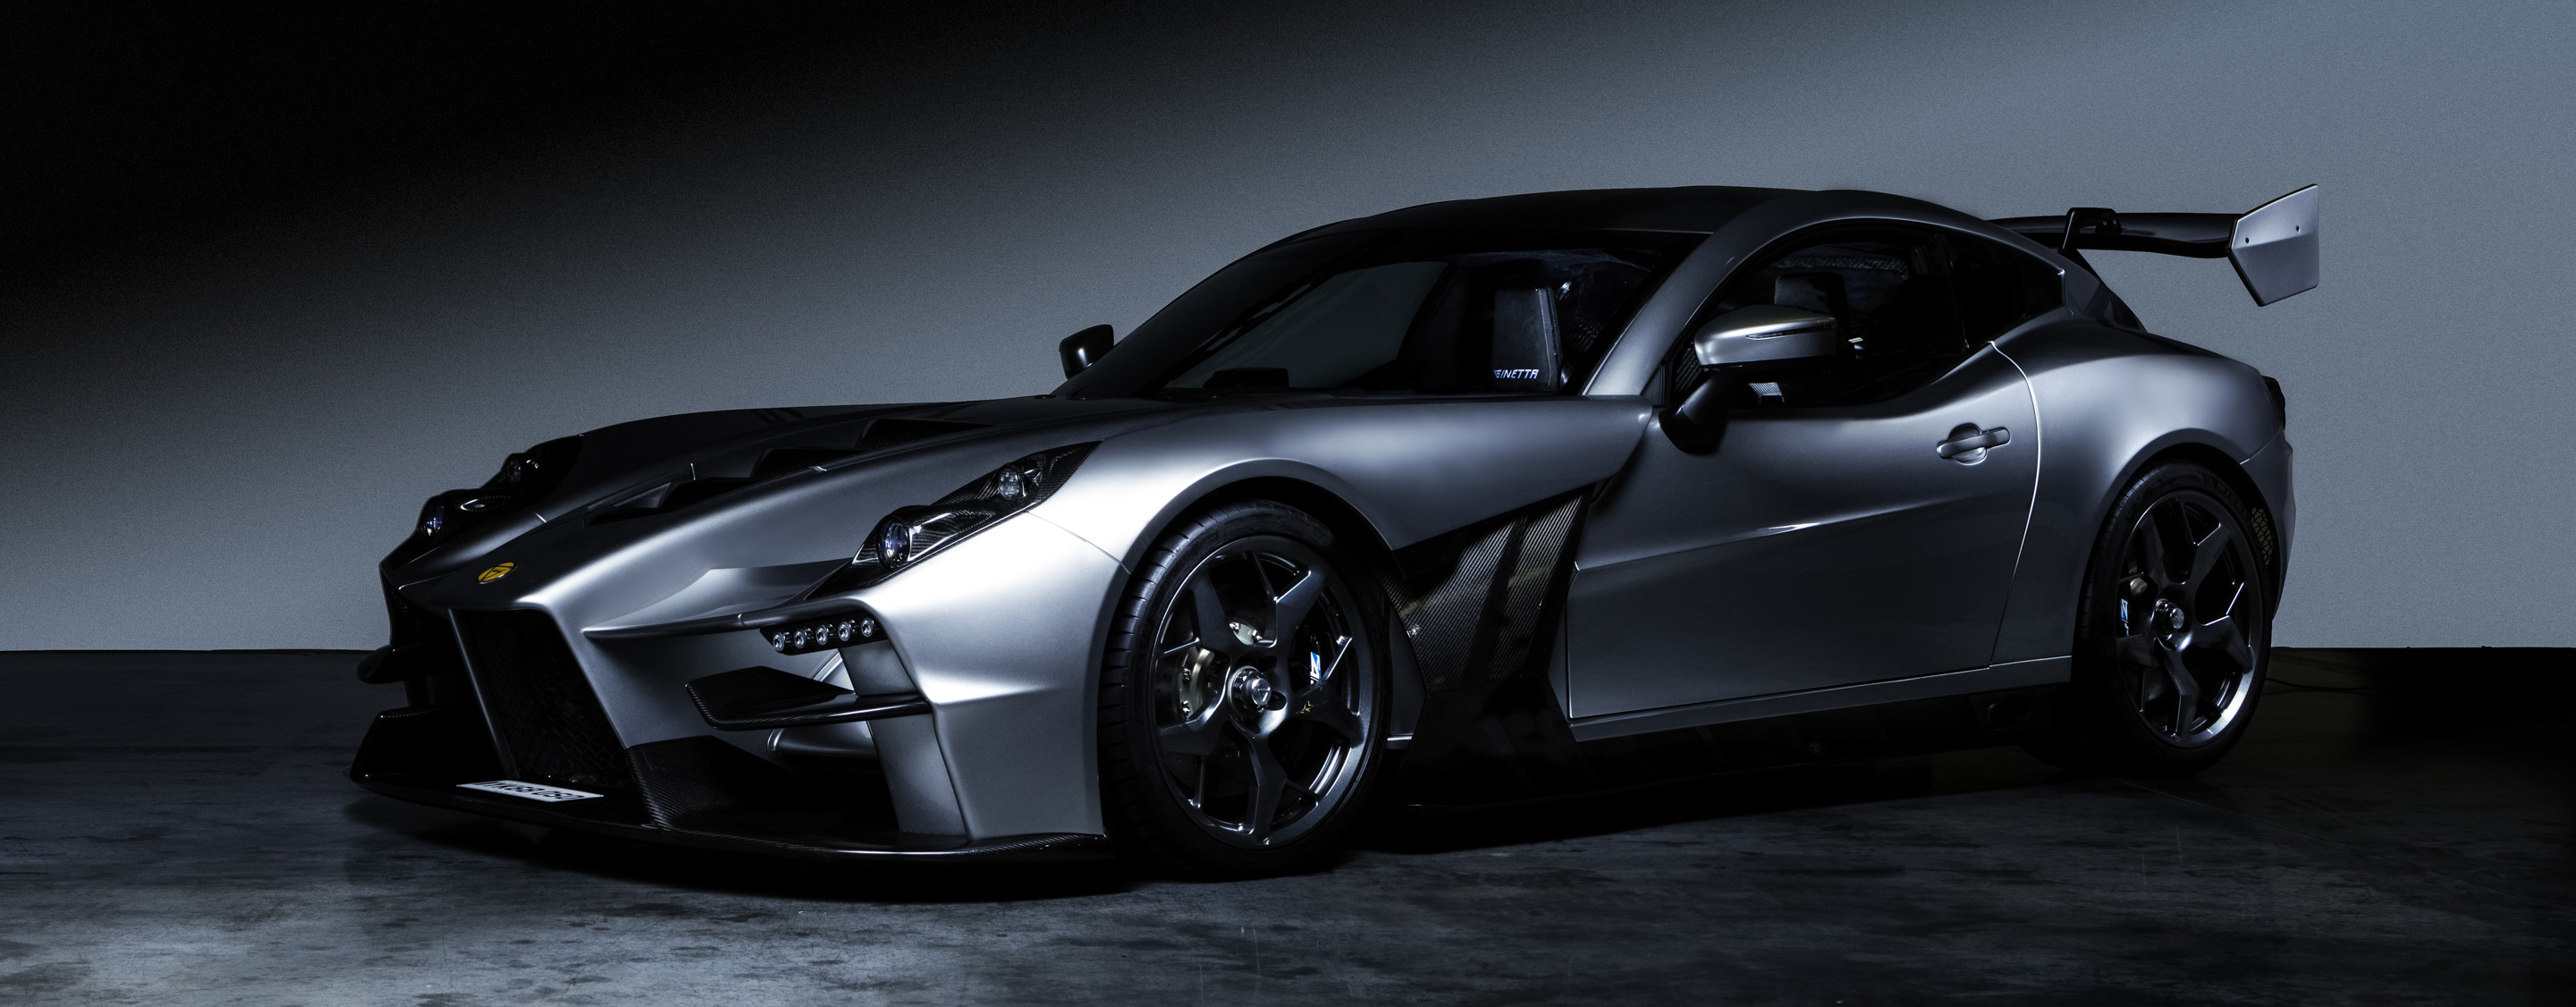 TrackWorthy - New Ginetta supercar 13